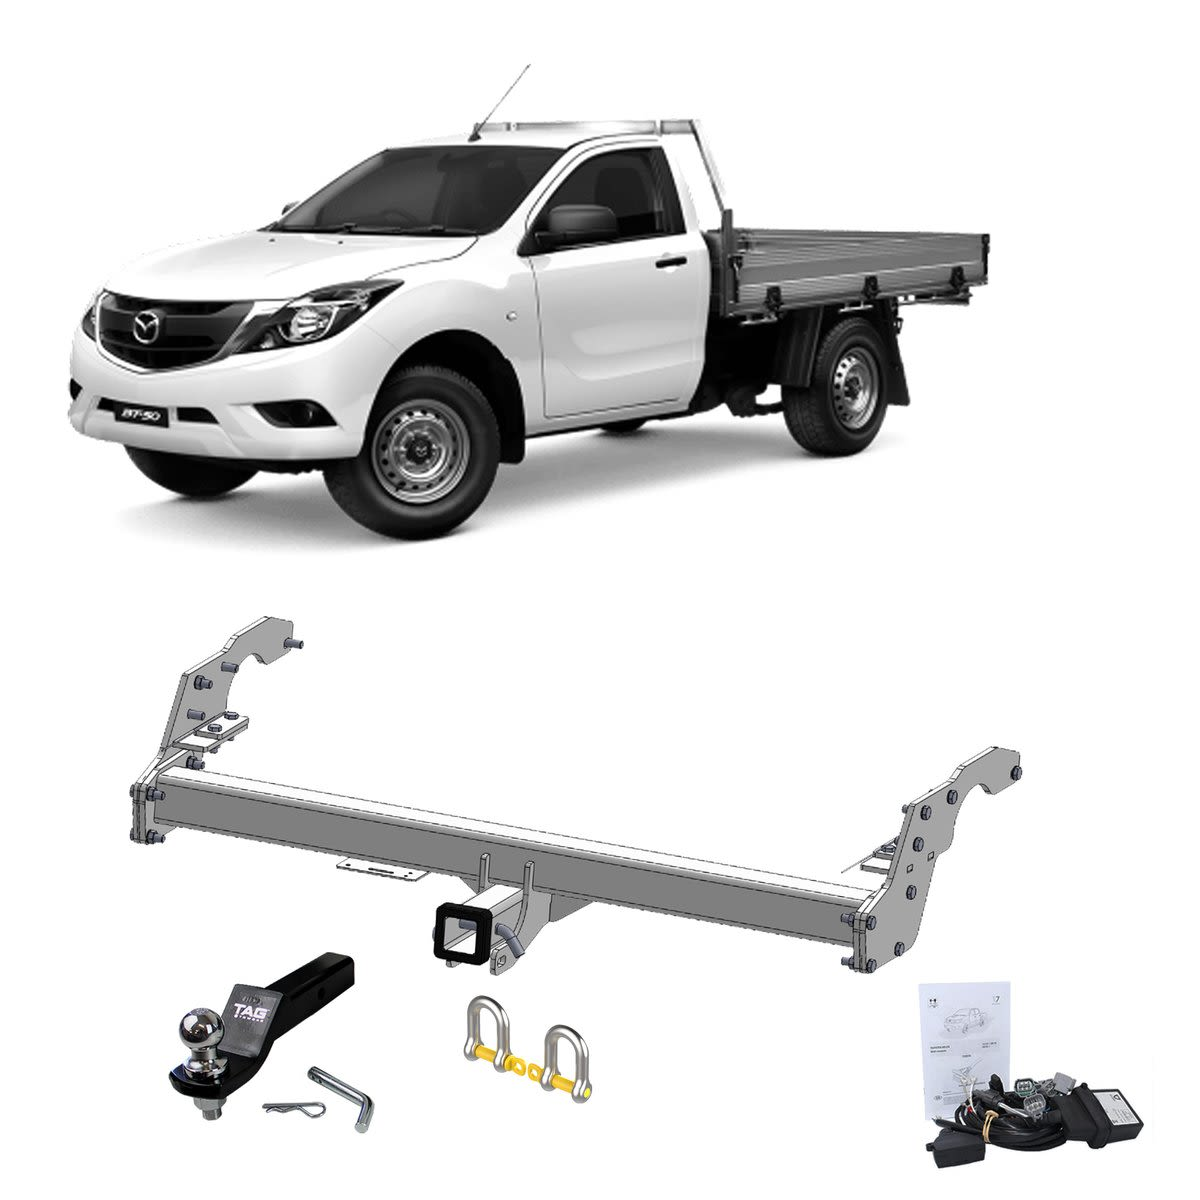 TAG Heavy Duty Towbar to suit Mazda BT-50 (09/2011 - on)